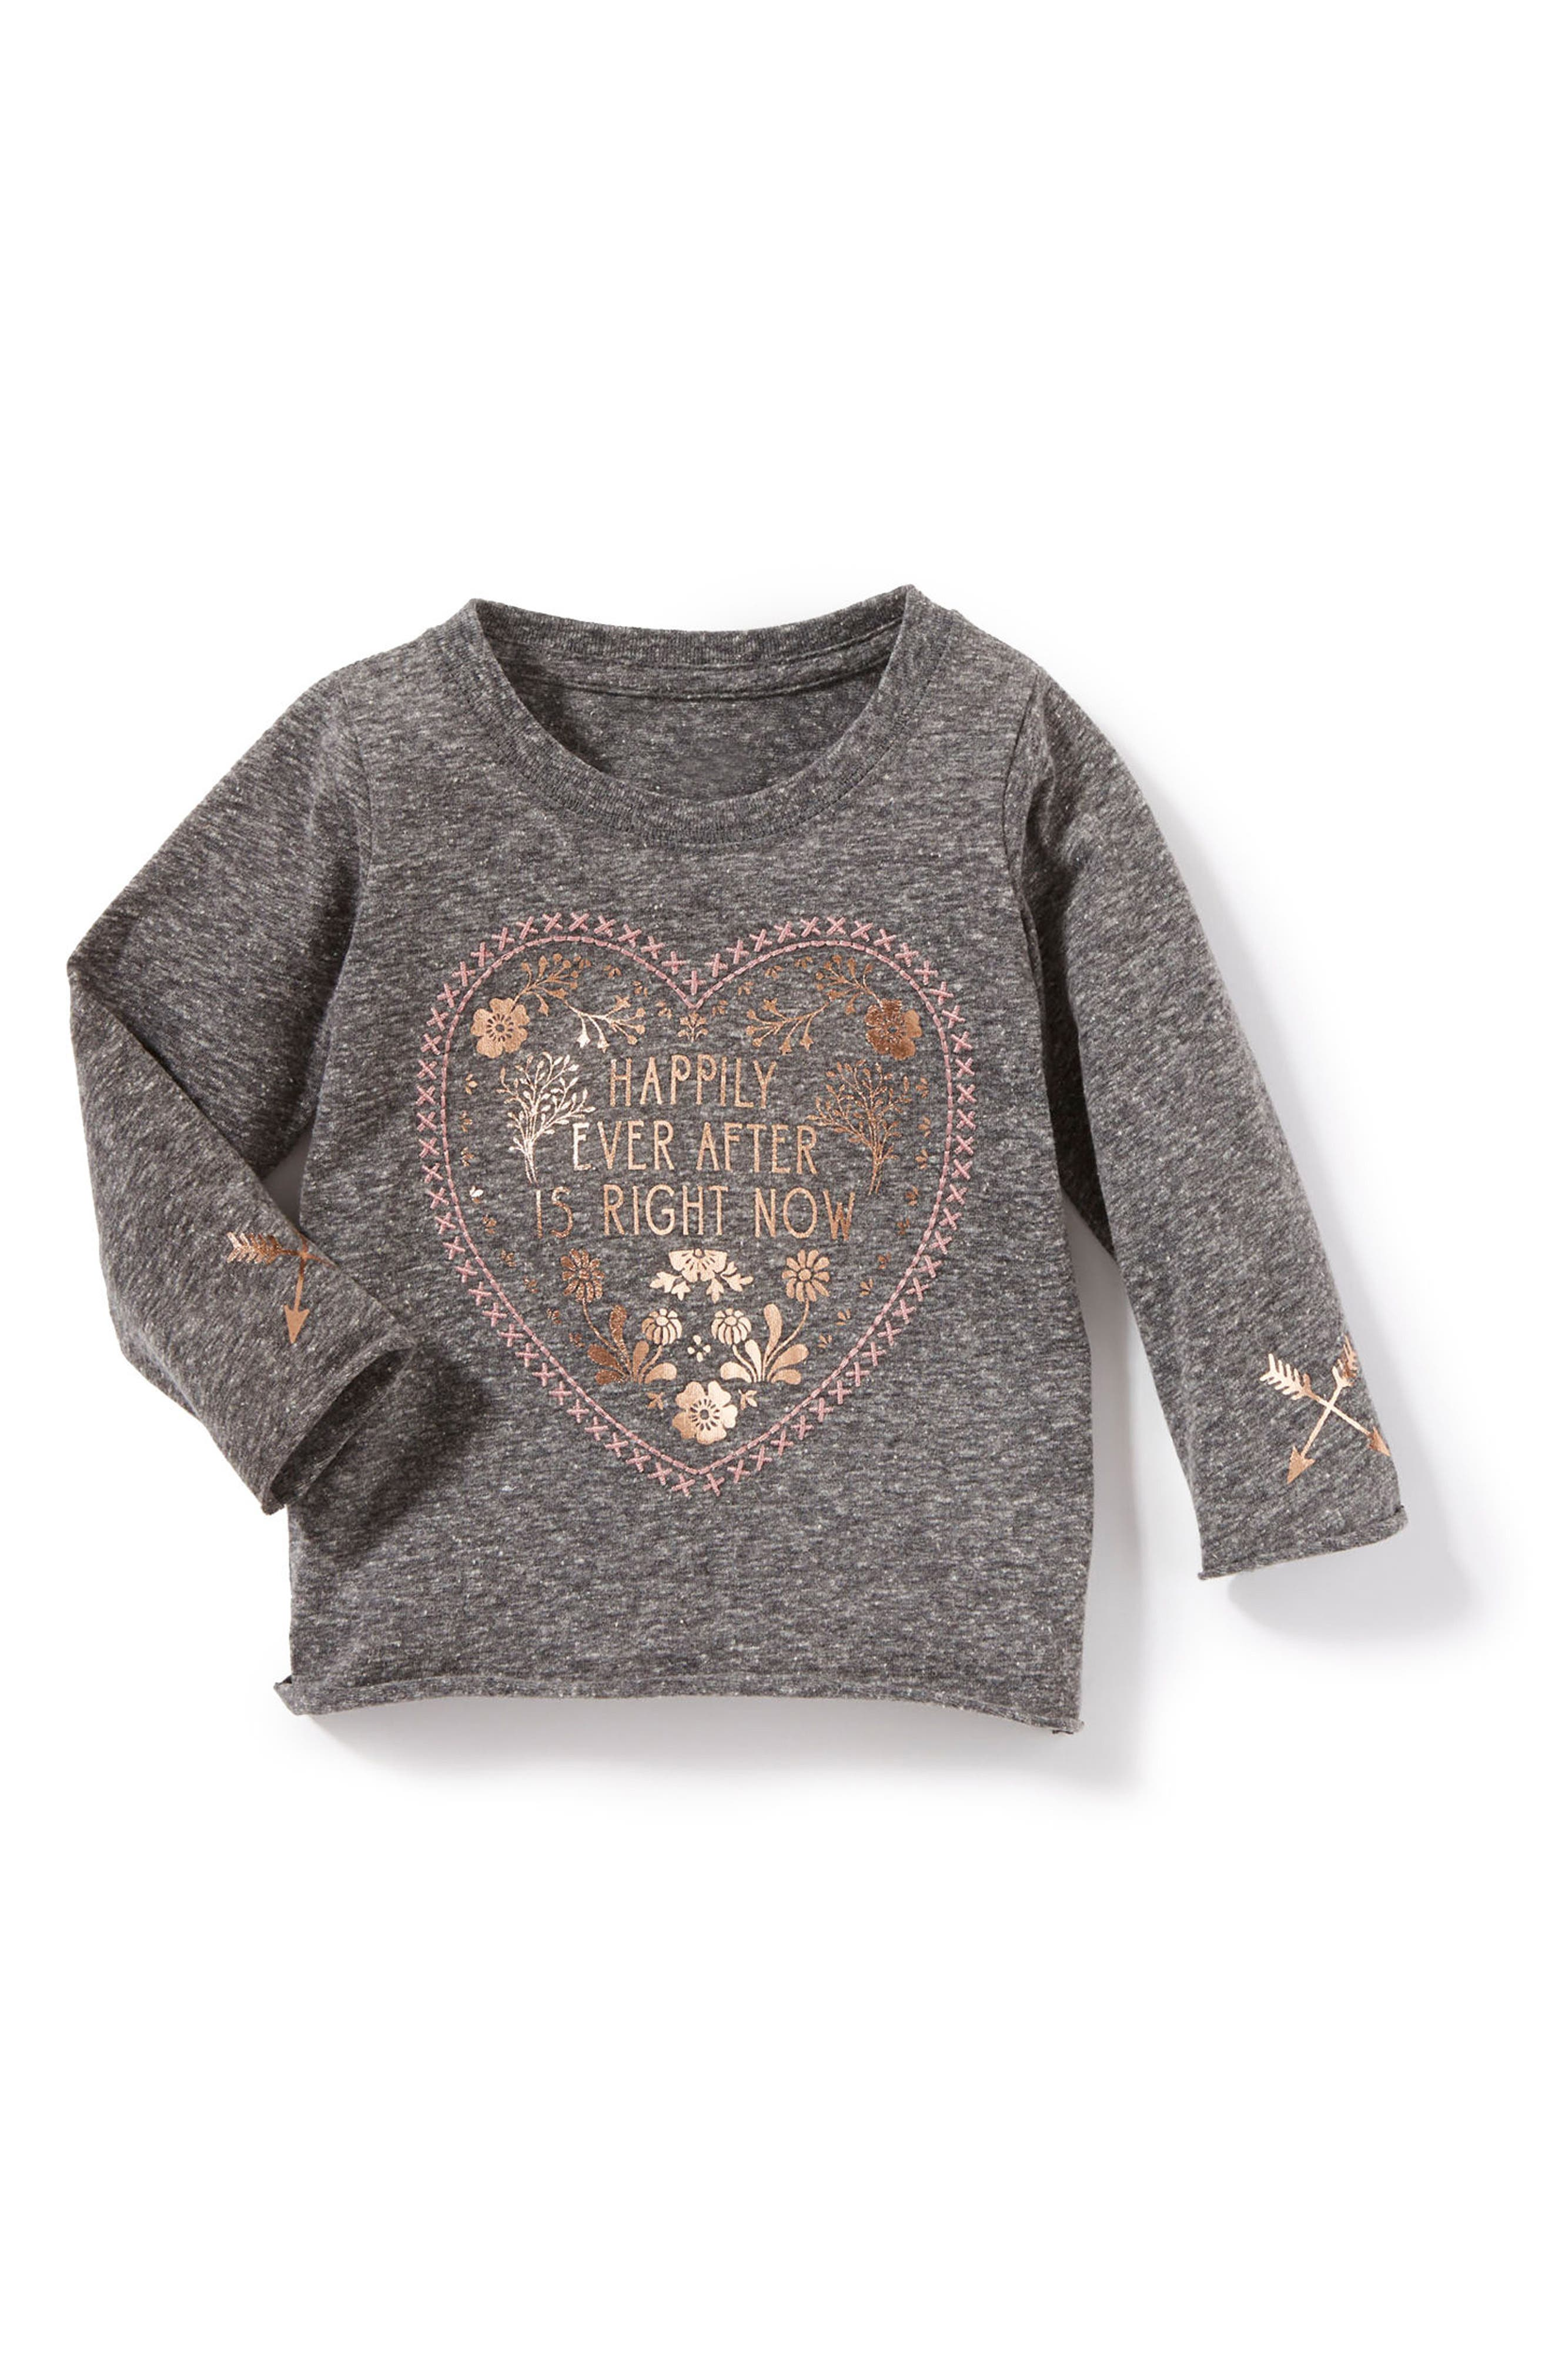 Happily Ever After Graphic Tee,                             Main thumbnail 1, color,